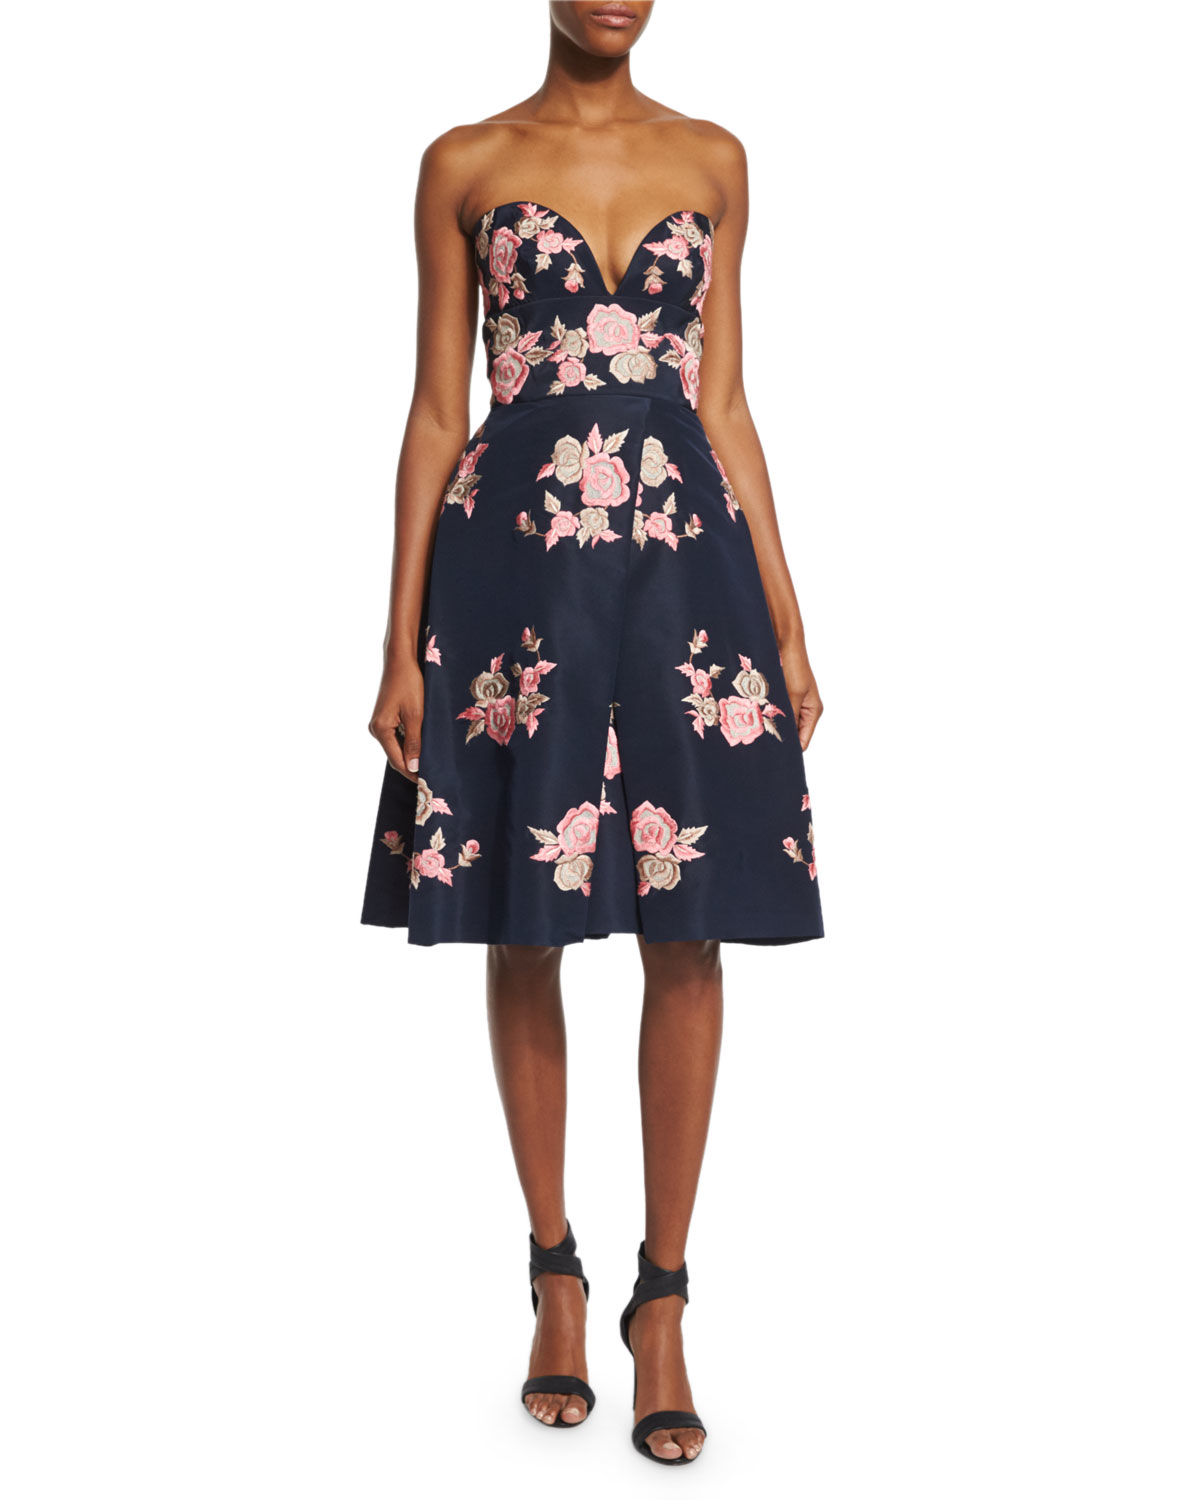 Naeem khan strapless floral embroidered cocktail dress in